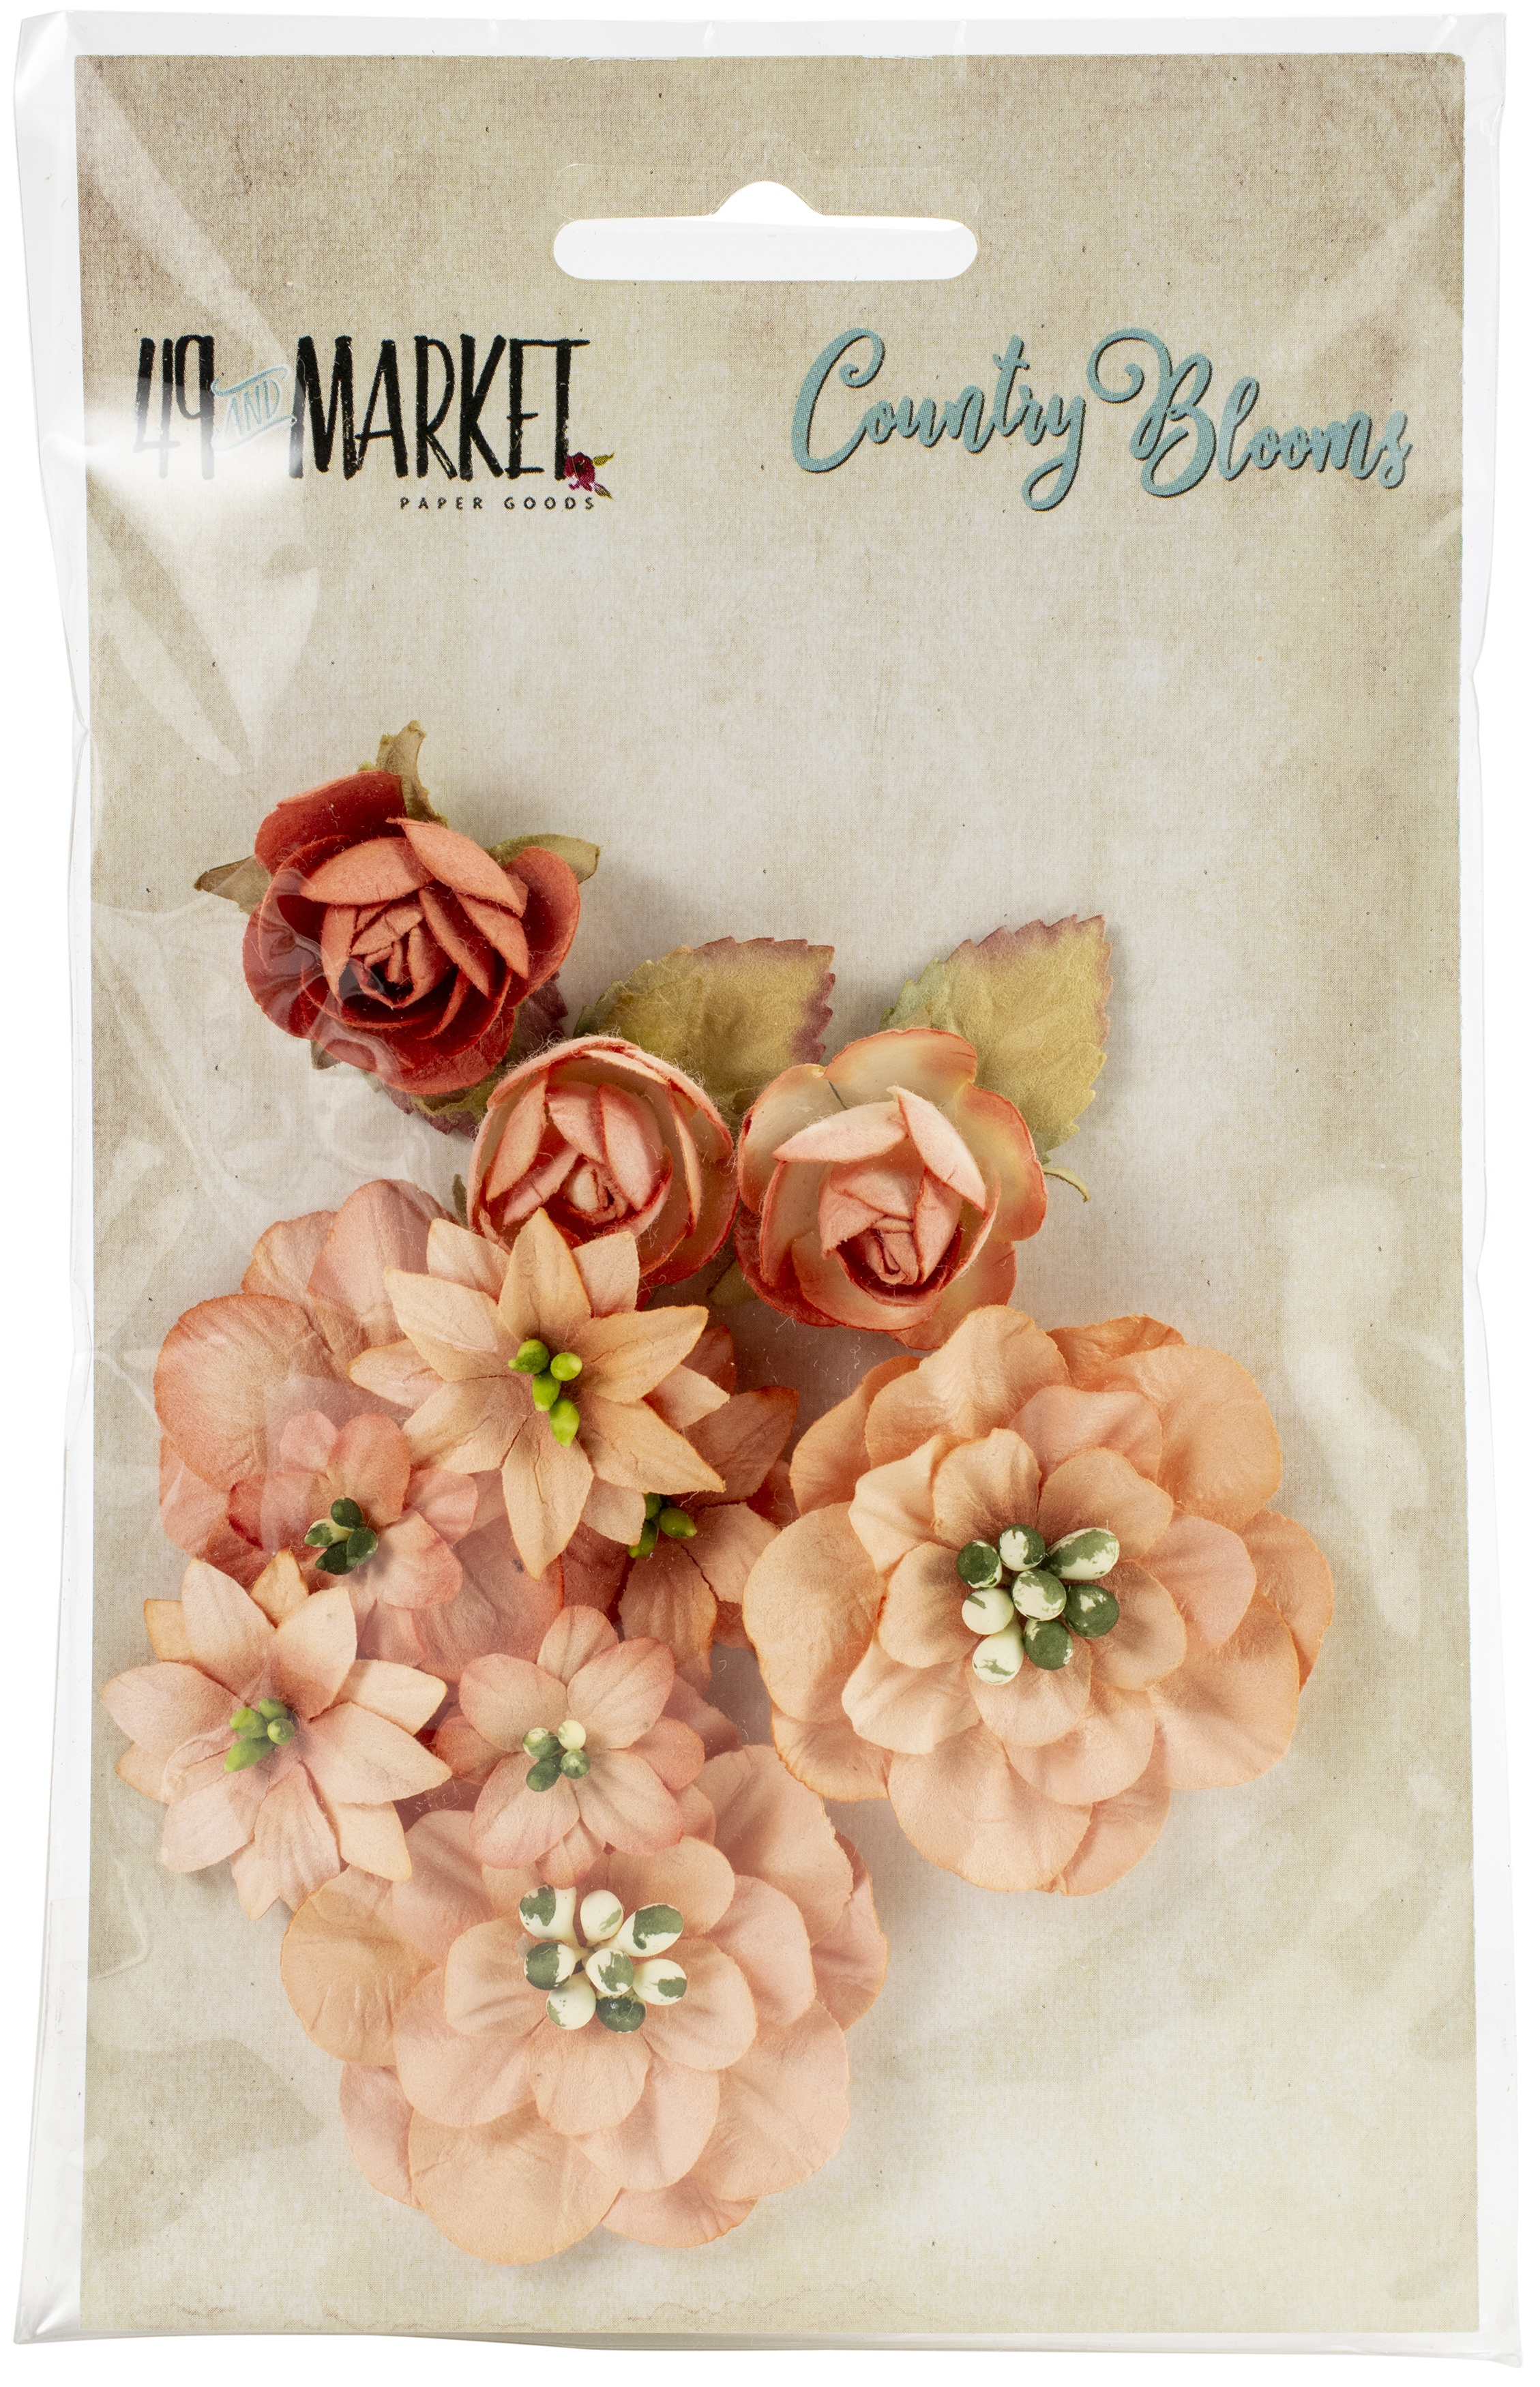 49 And Market Country Blooms 12/Pkg - CLICK TO SEE MORE